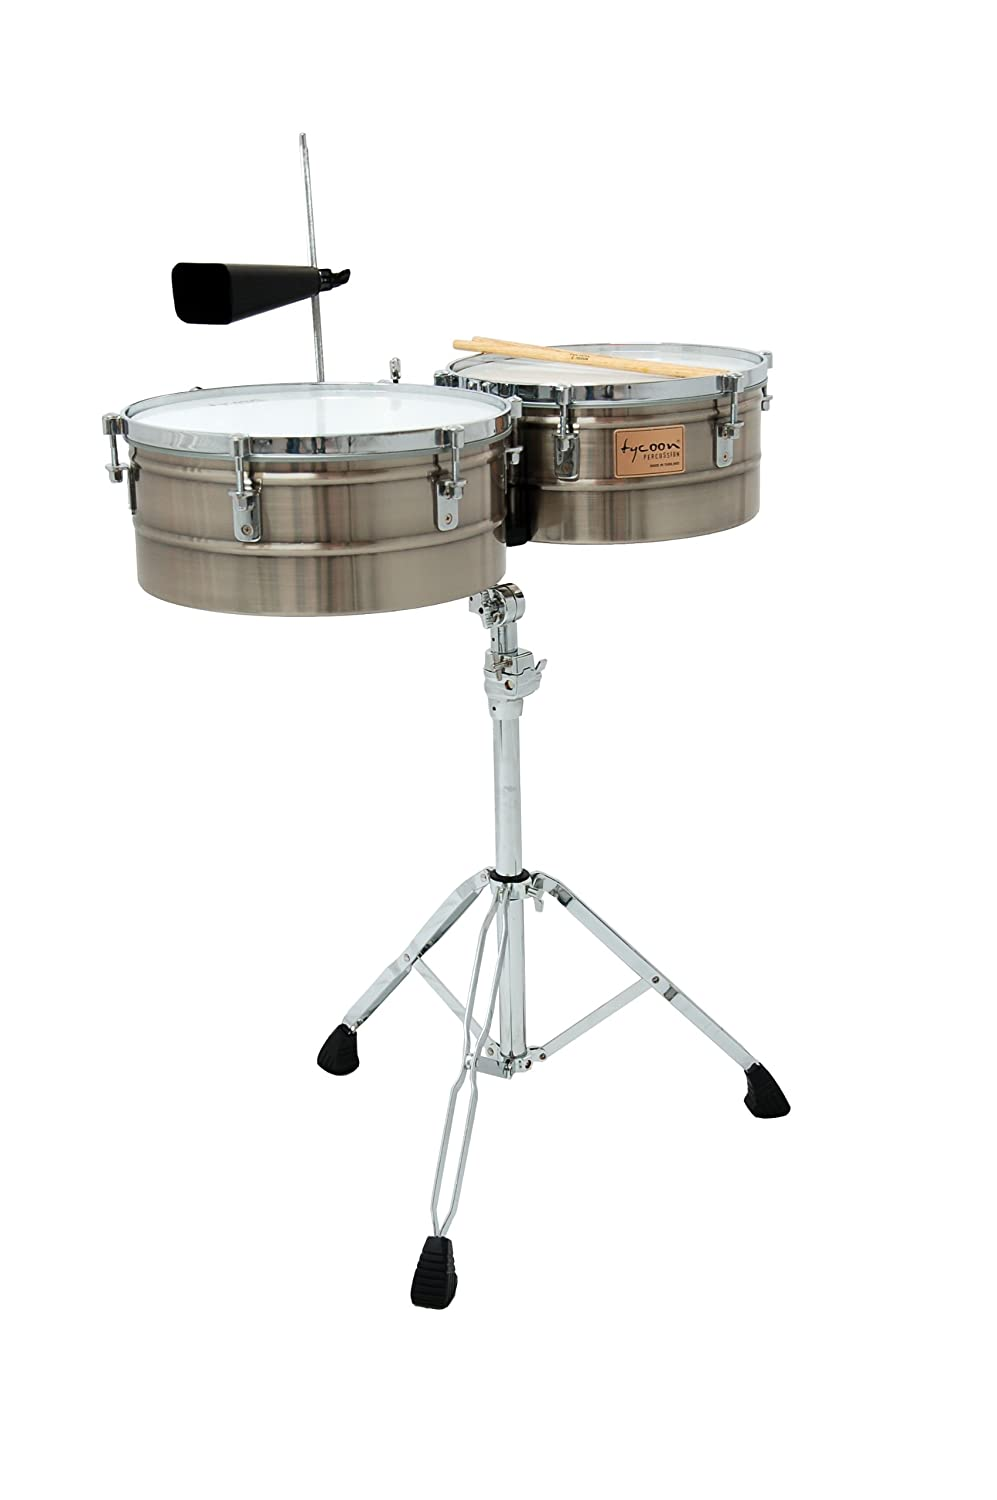 Tycoon Percussion 14 Inch & 15 Inch Brushed Chrome Shell Timbales TTI-1415 BC